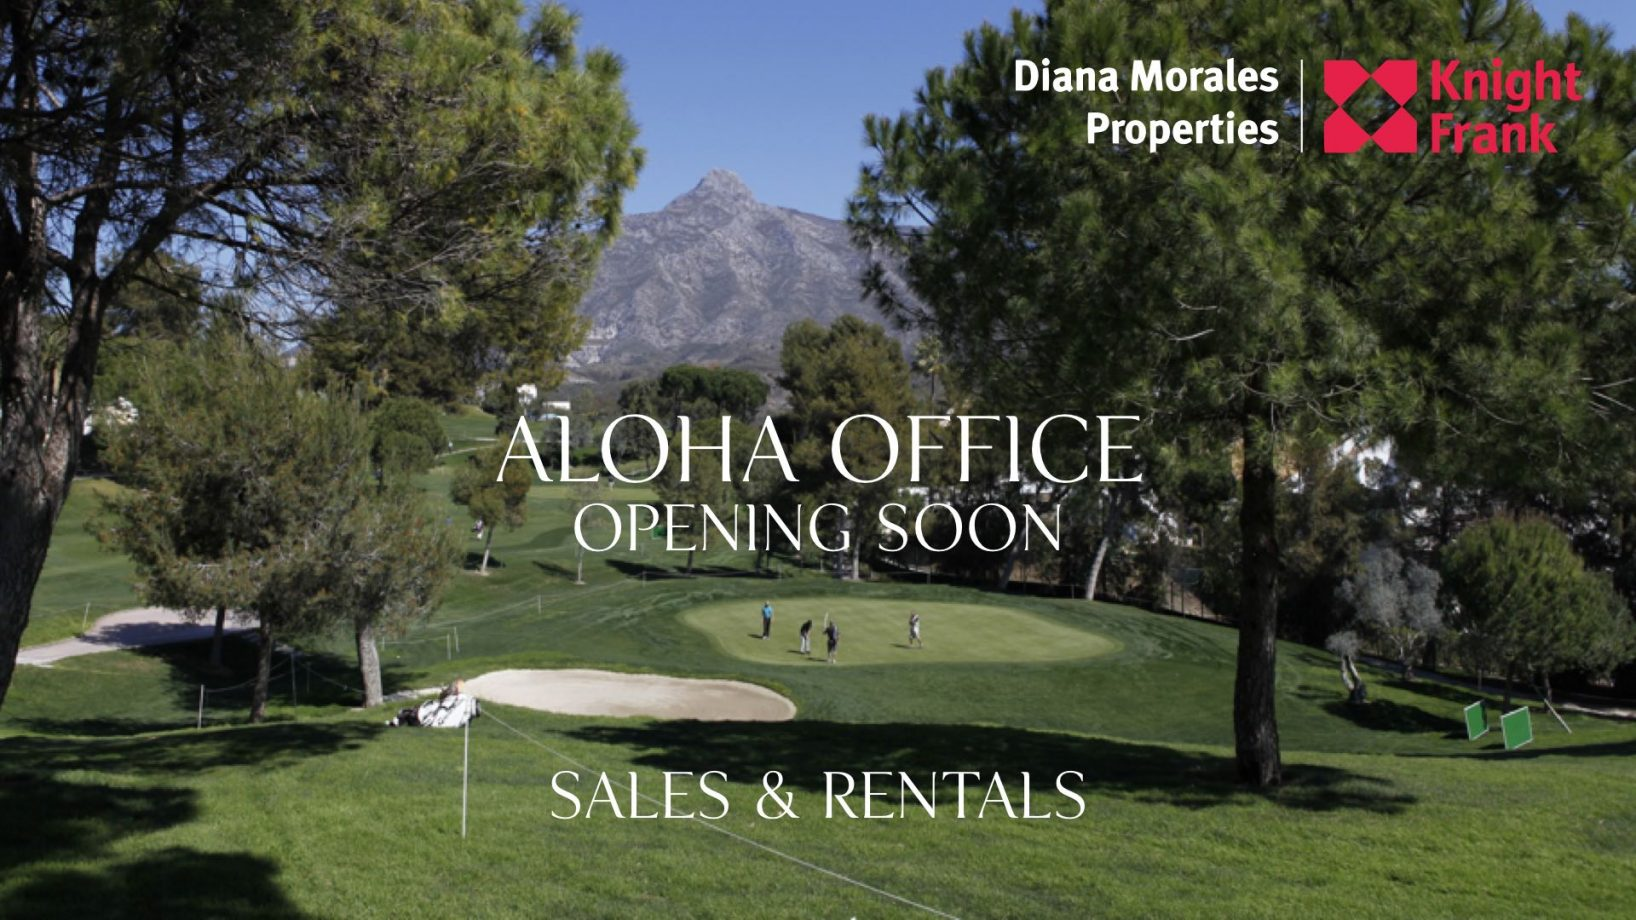 Diana Morales Properties   Knight Frank expands into new Marbella office